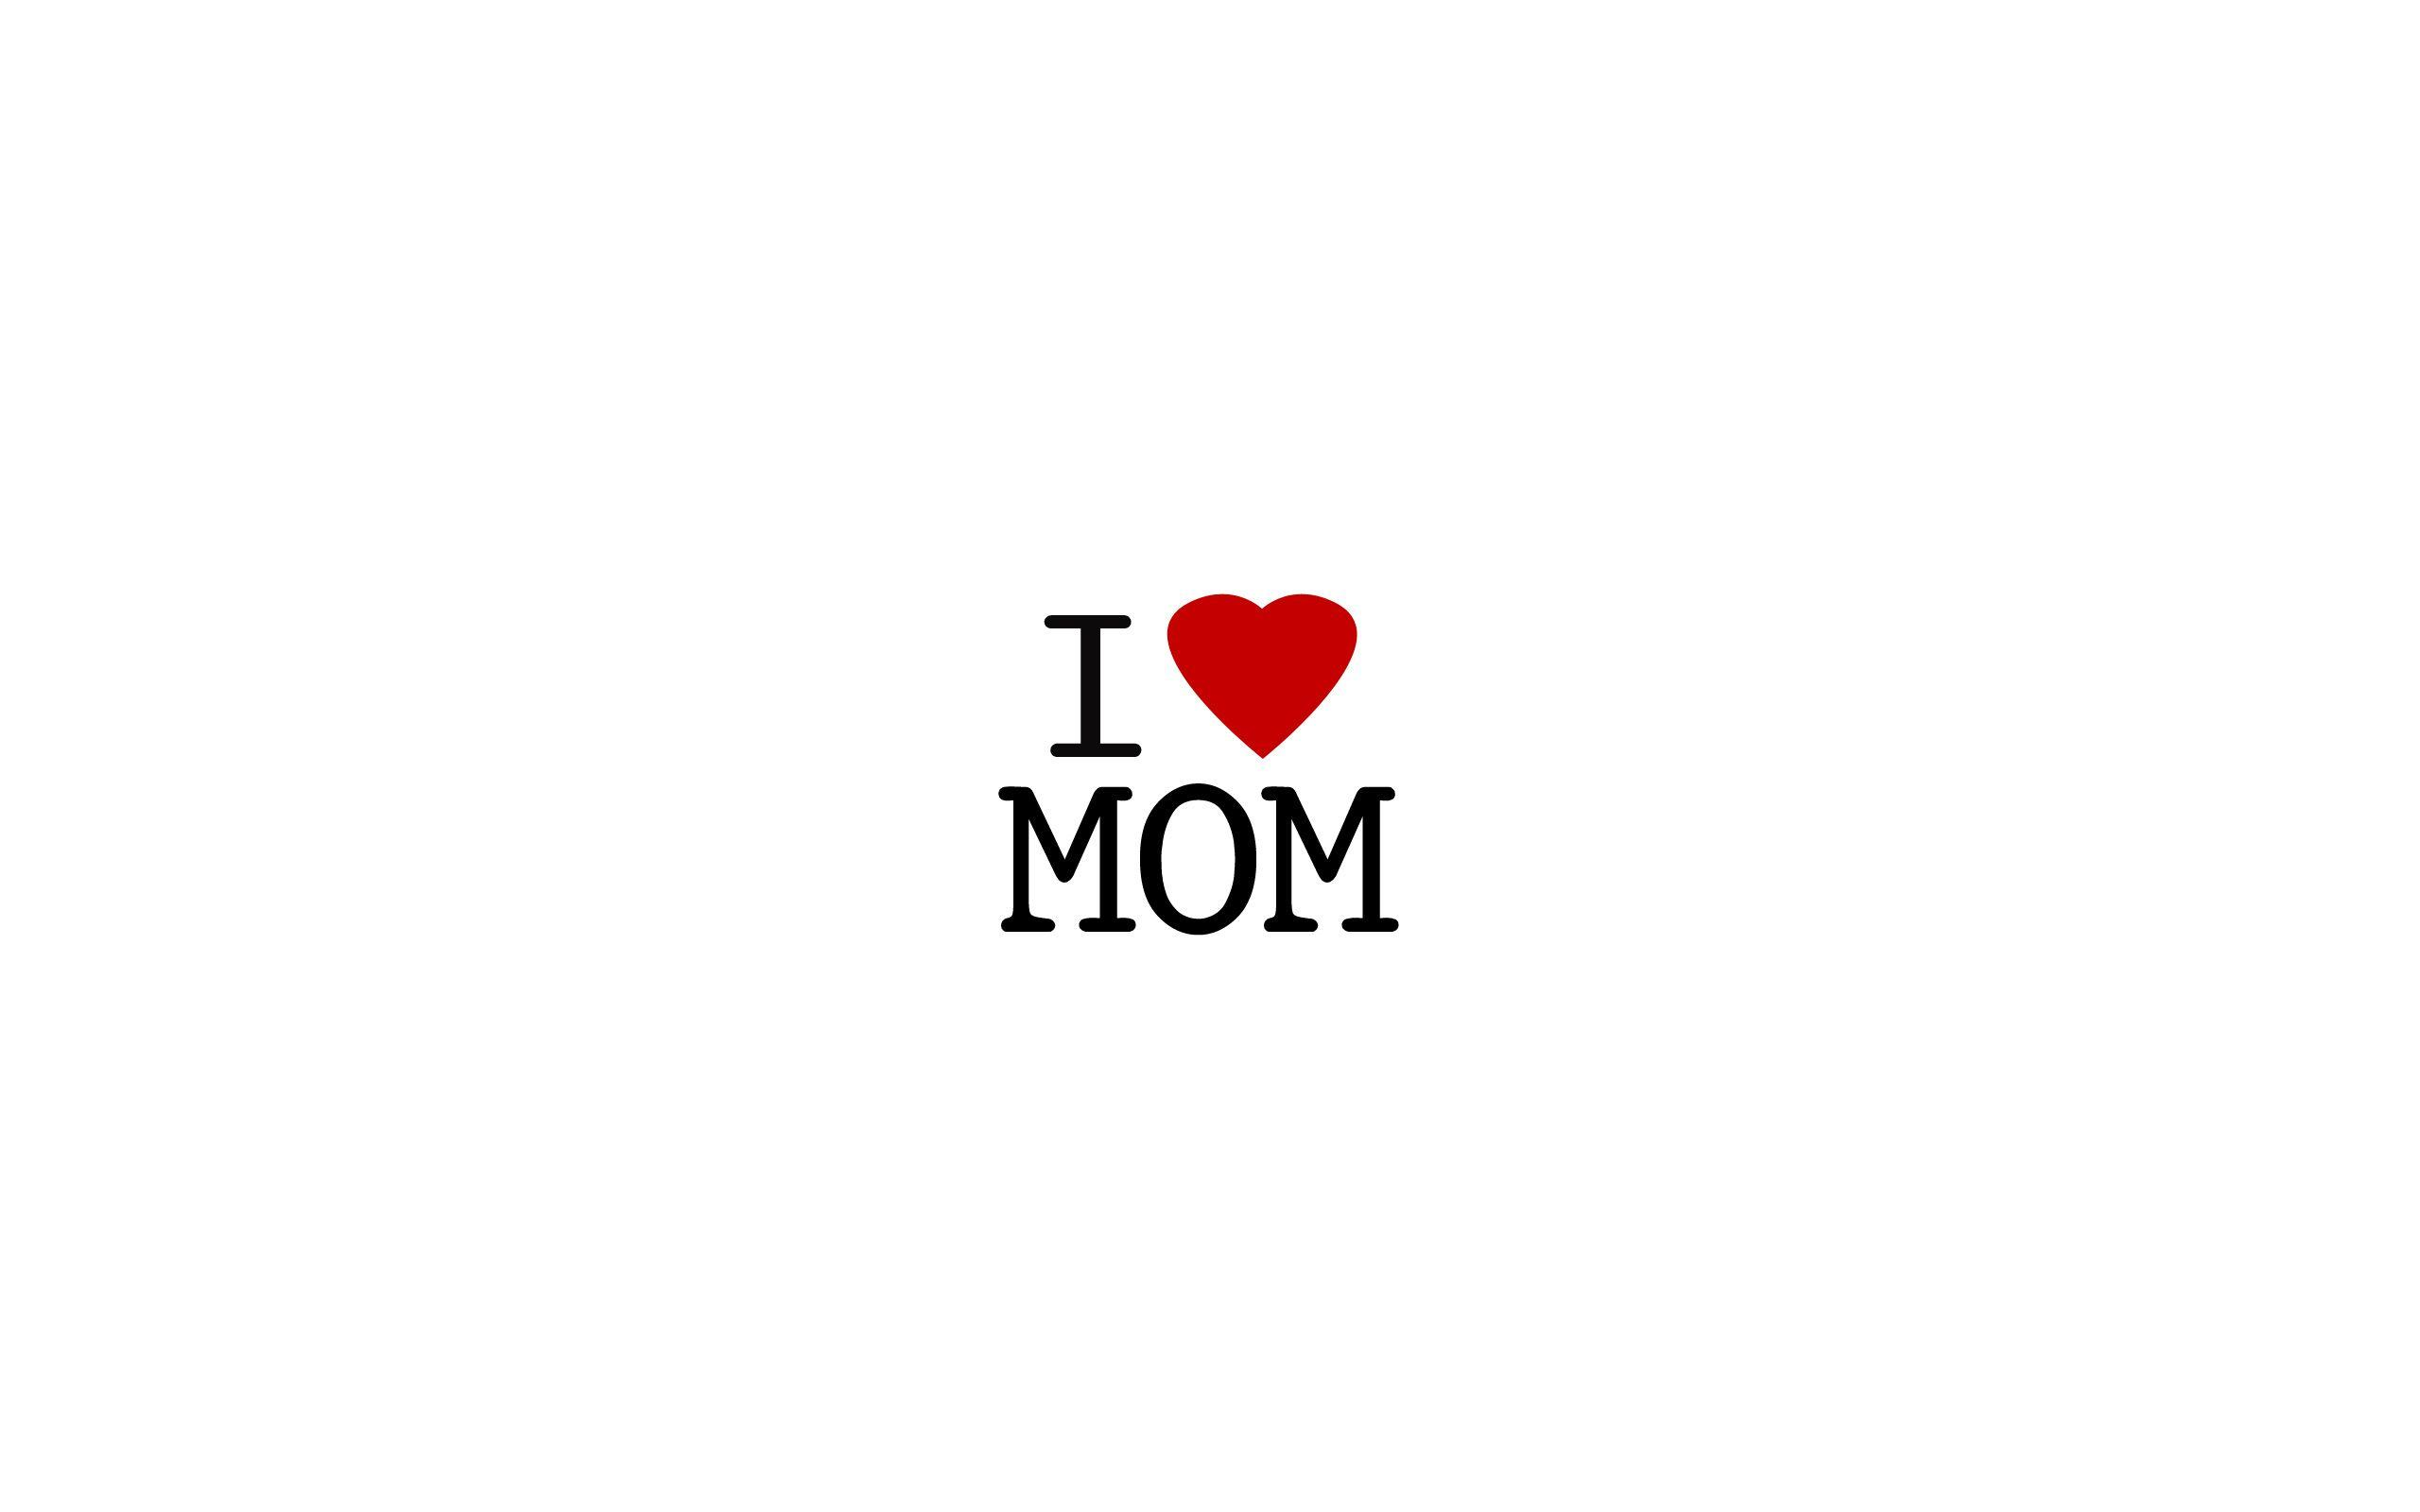 I Love You Mom Wallpapers - Wallpaper cave